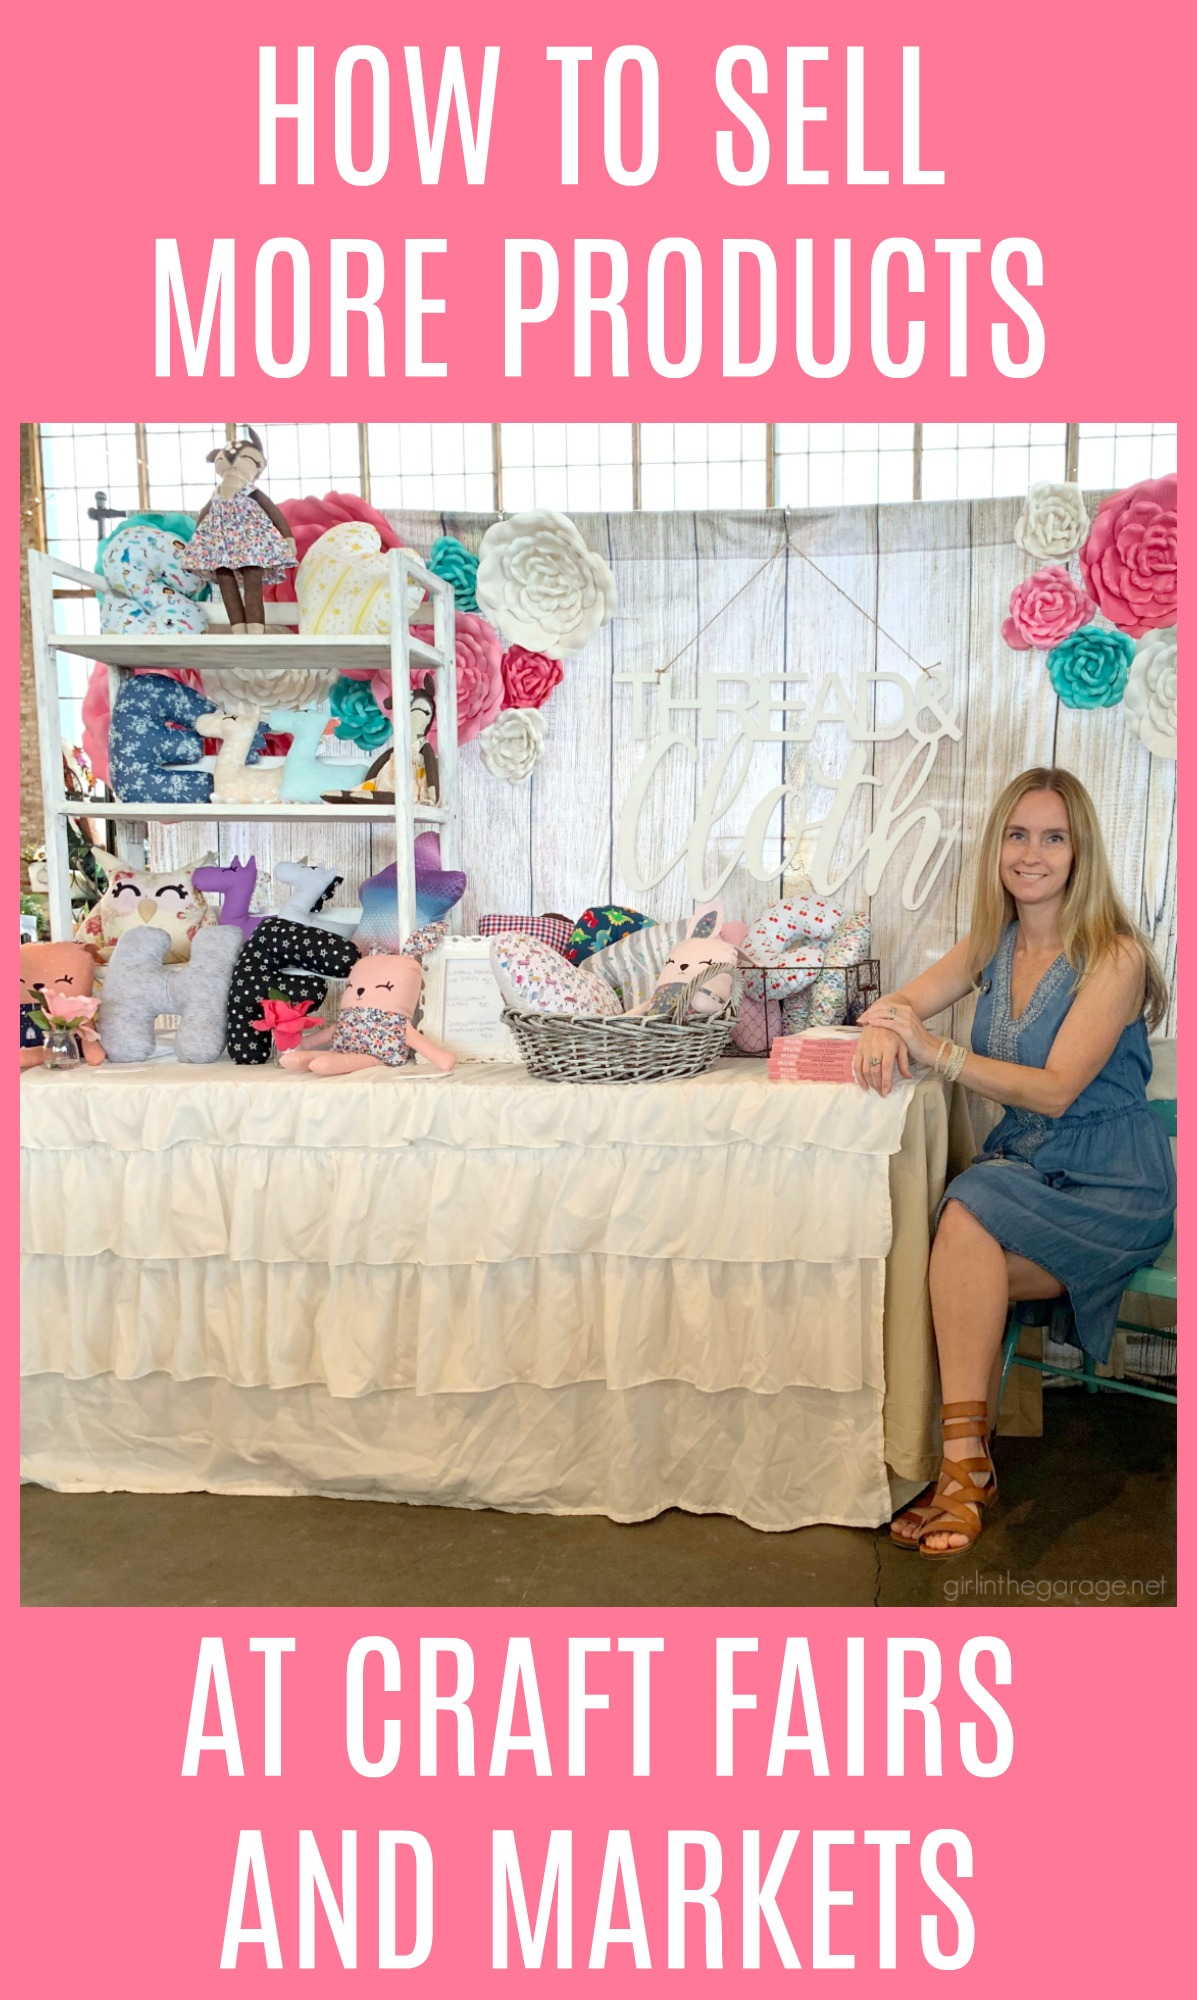 13 Ways to Sell More at Craft Shows and Vintage Markets - Girl in the Garage